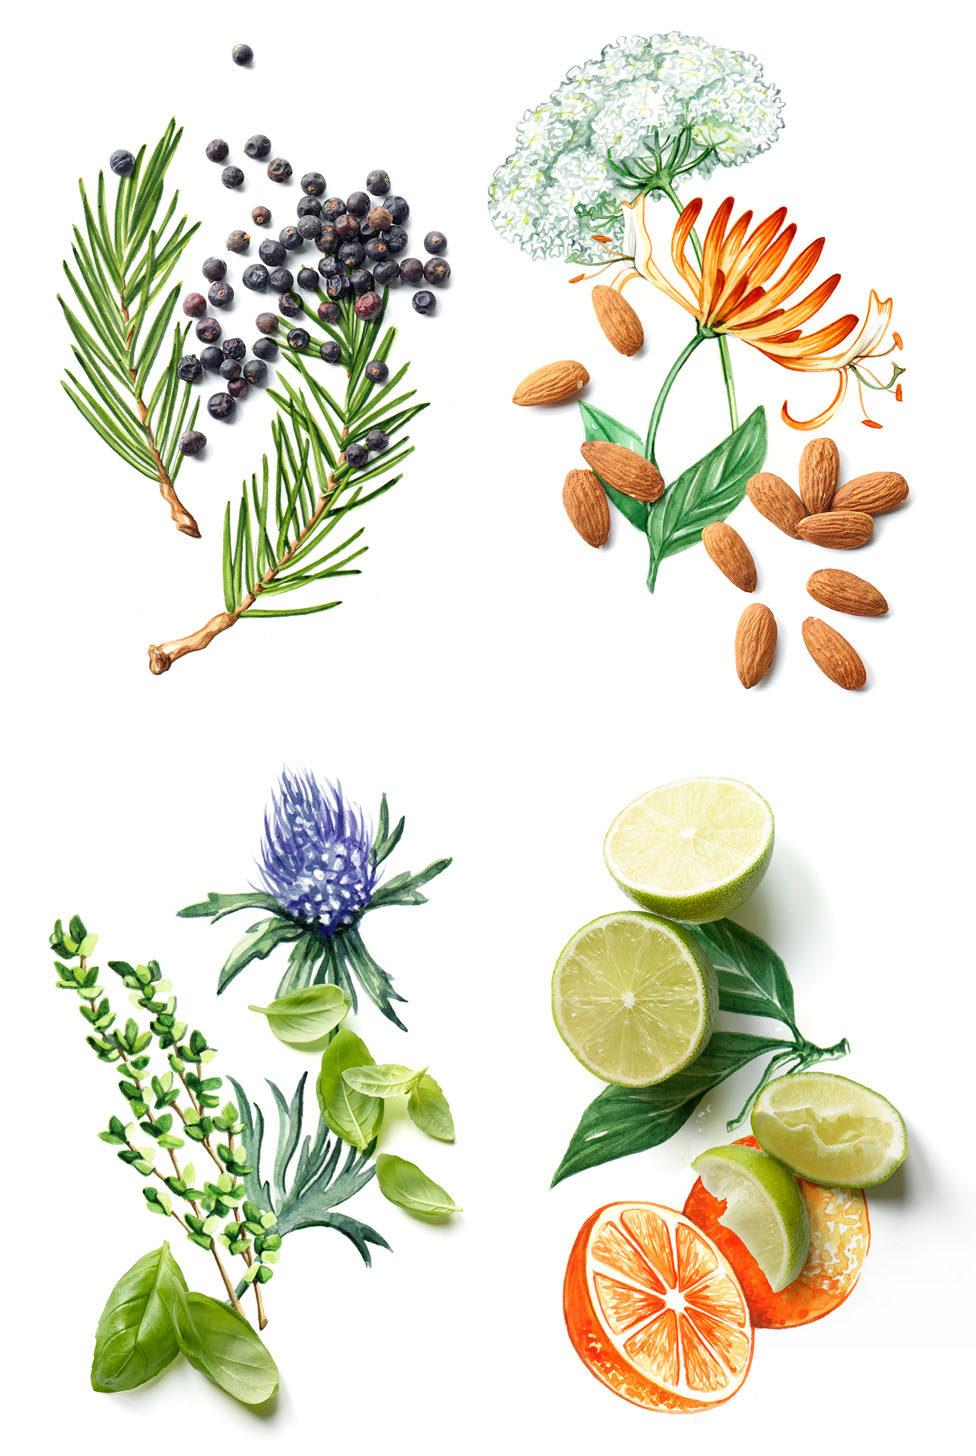 Food illustration, botanical illustration, photography collaboration for Waitrose